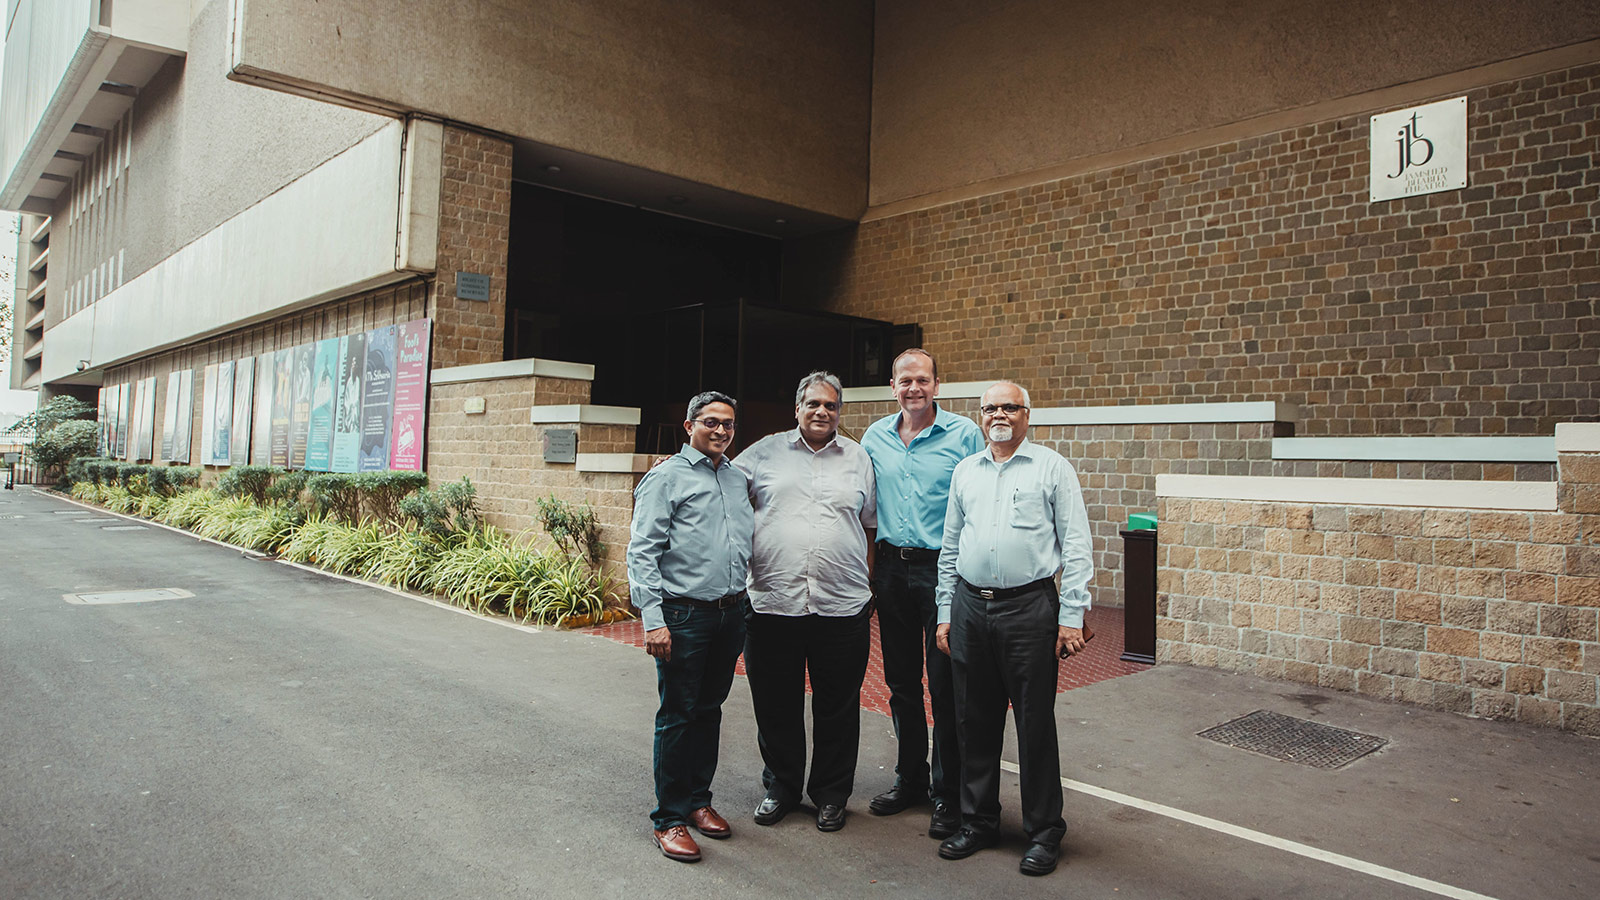 (L-R) Sandeep Braganza, Sales Manager SAARC, Meyer Sound; Nainesh Vora, Founder & Owner, Image Engineering; Richard Nowell, Owner, RNSS Ltd.; Nayan Kale, General Manager, Technical, NCPA